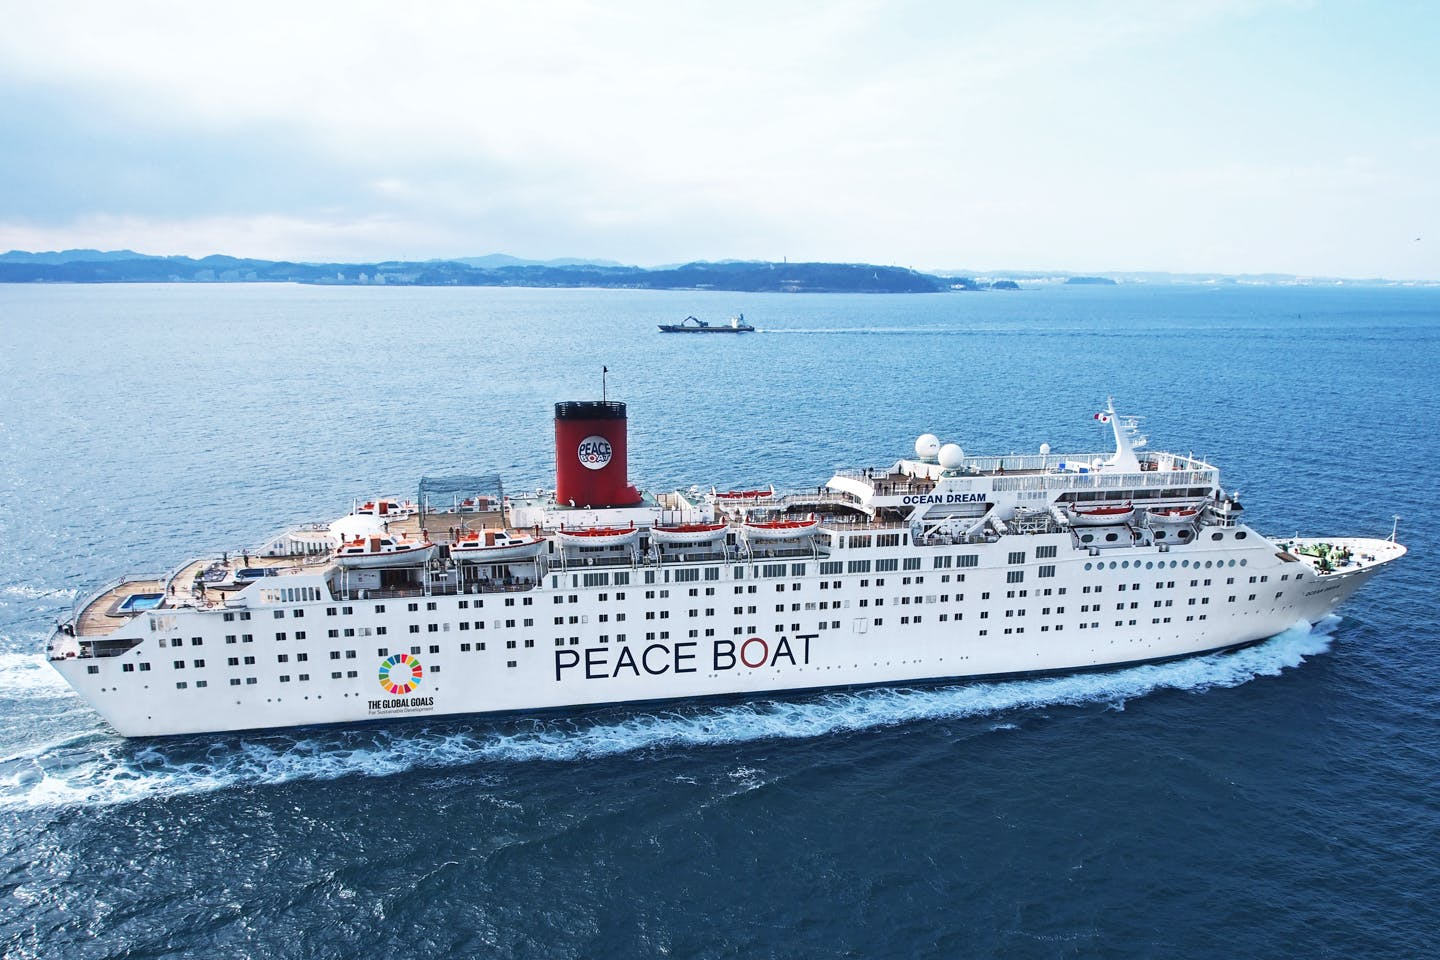 Partners in sustainable development: Liter of Light joins Peace Boat's 100th voyage